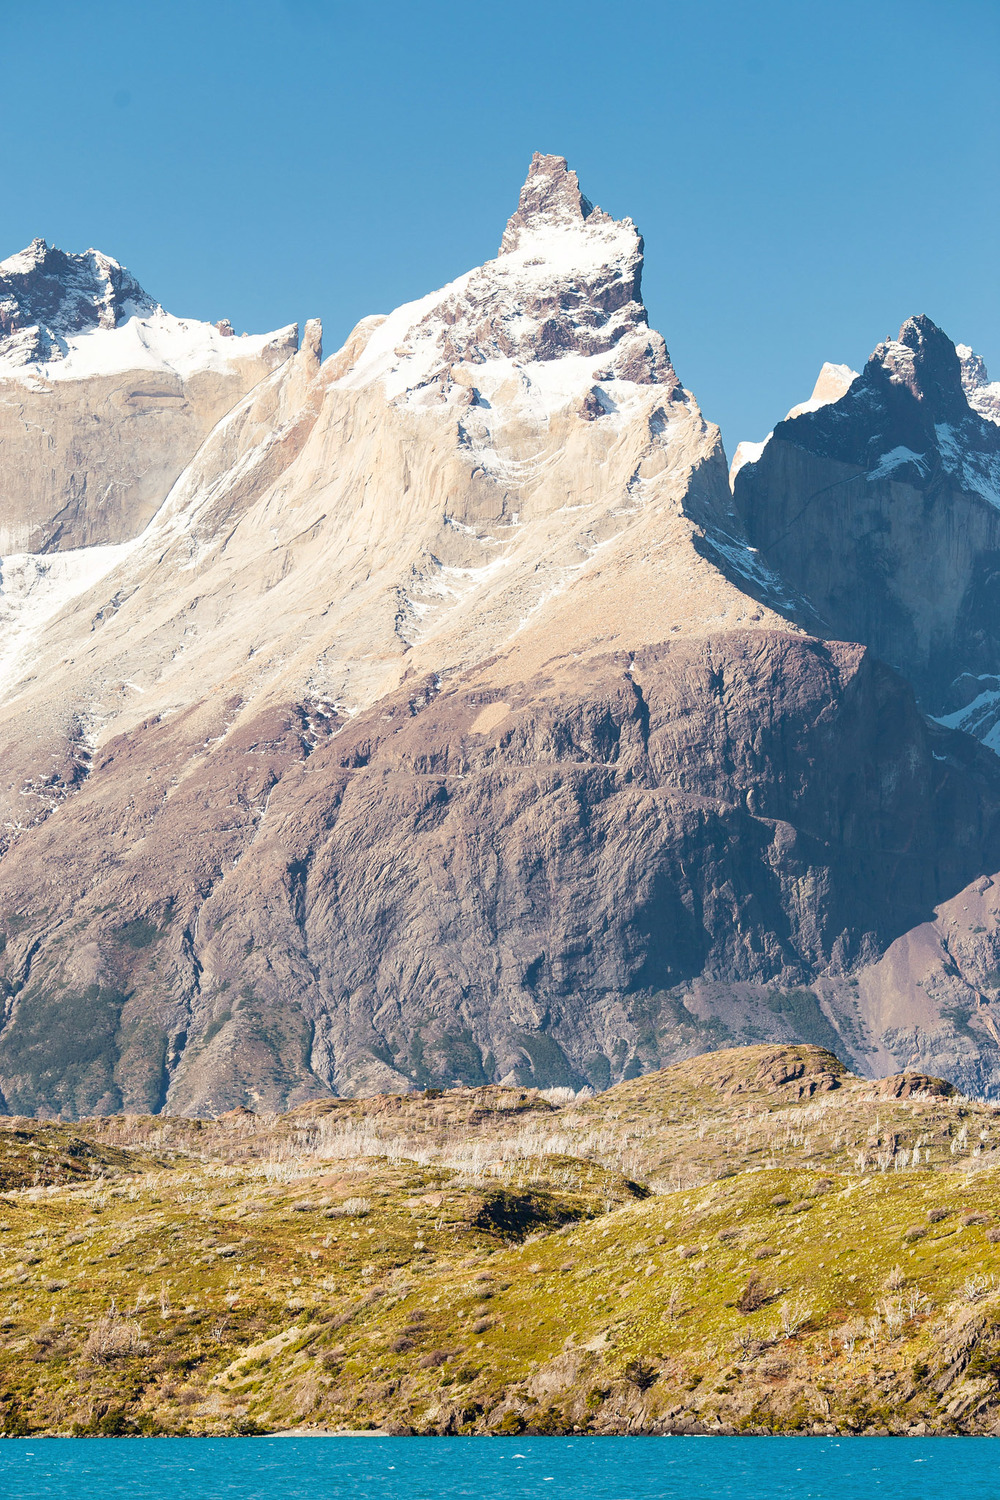 Wedding-Travellers-Overlanding-Destination-Wedding-Chile-Torres-del-Paine-snow-ice-mountain-shore-coast-Los-Cuernos